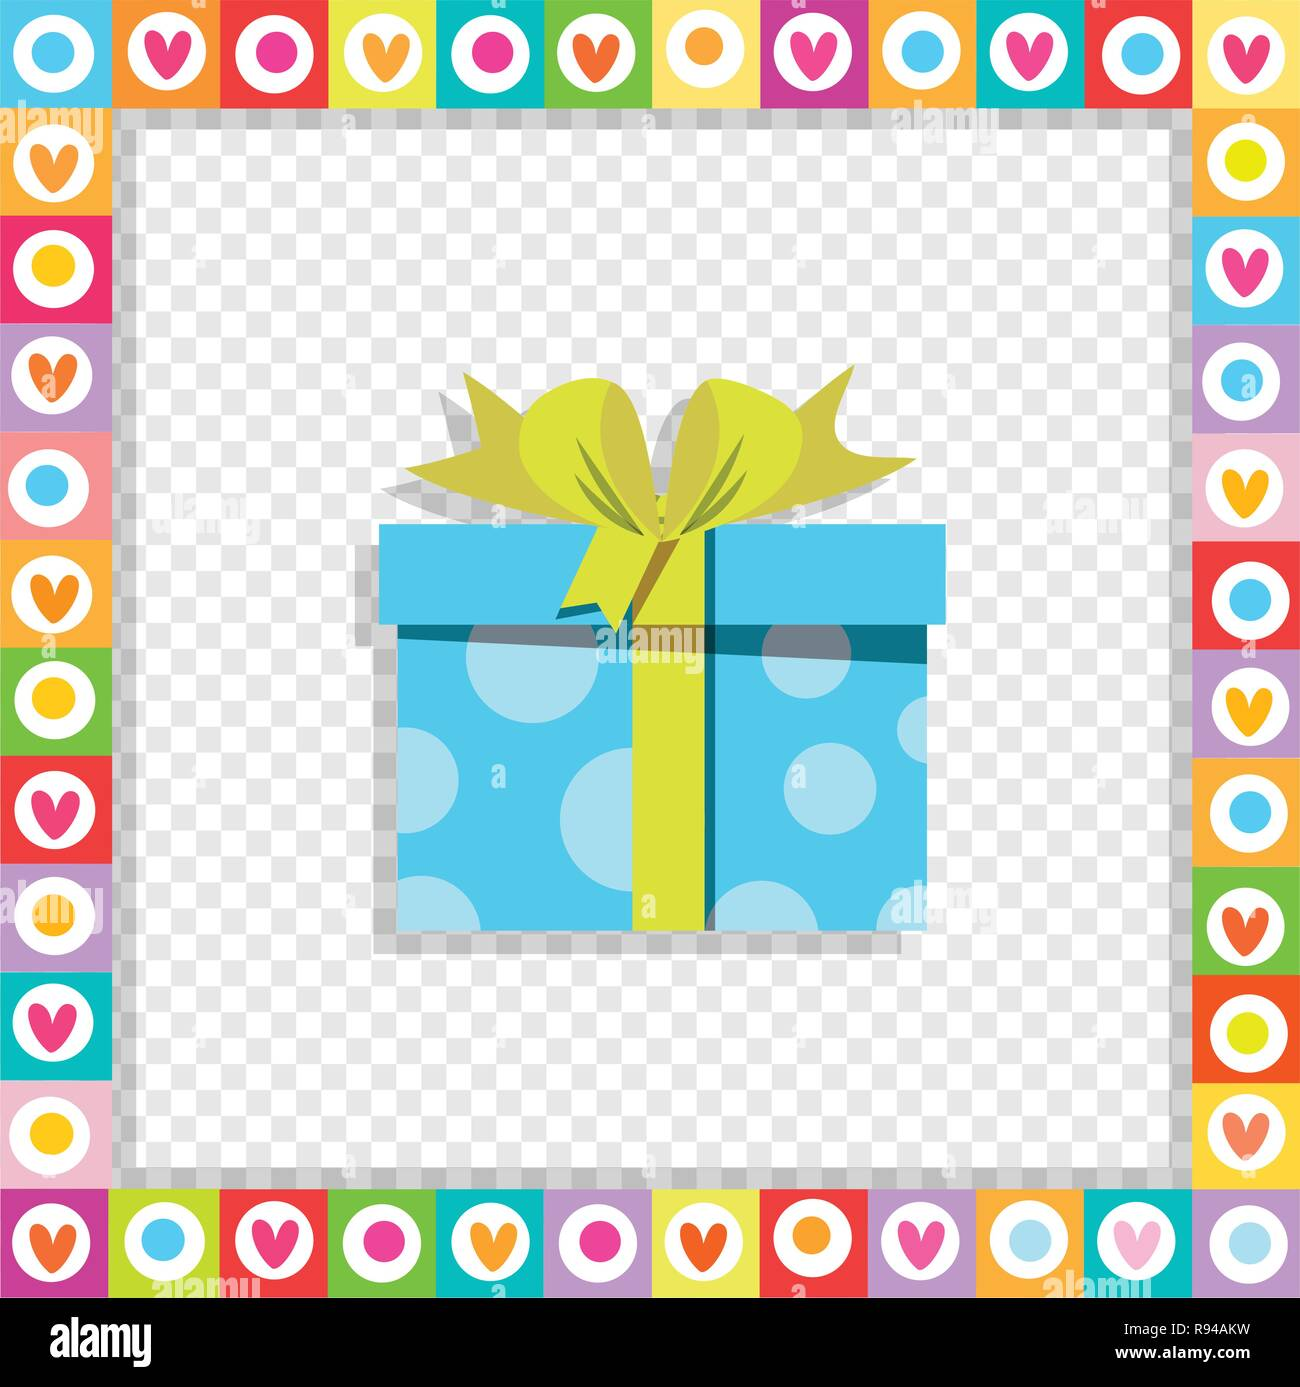 Vector illustration of cute cartoon blue gift box wrapped with festive ribbon framed with heart border isolated. Present icon, anniversary logo, weddi - Stock Image